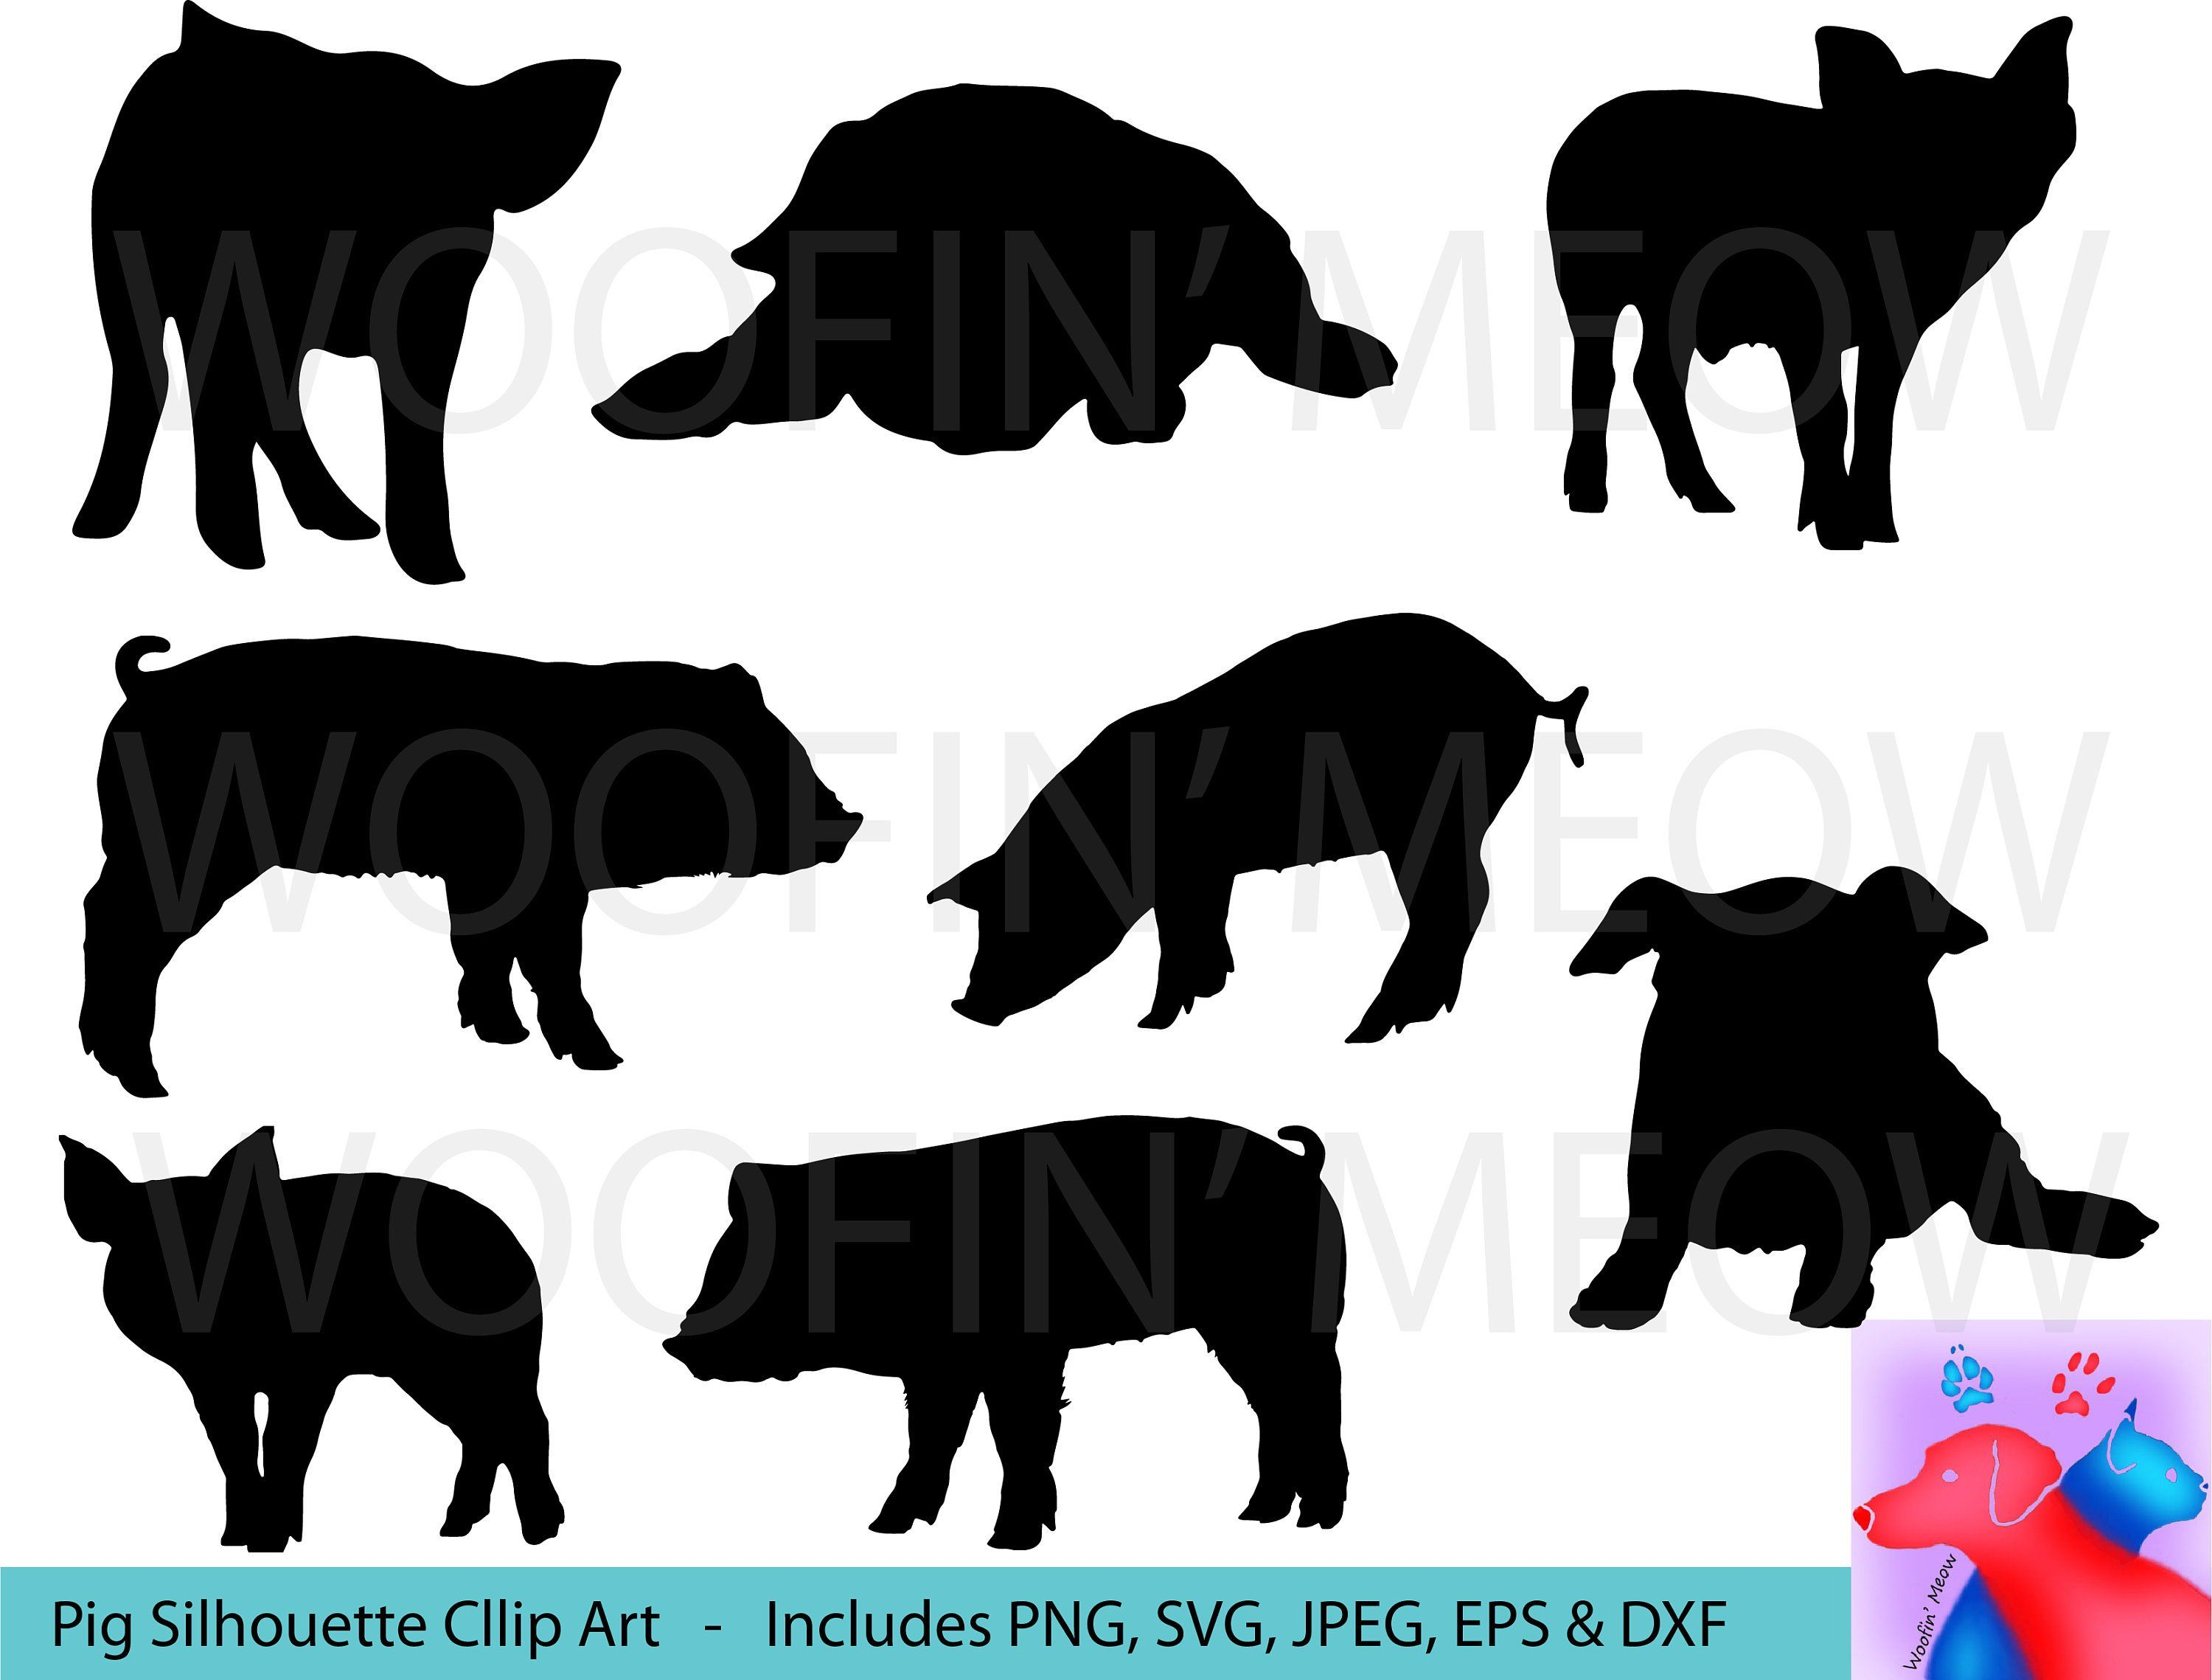 small resolution of pig svg clipart pigs silhouette pigs vector pigs clip art pigs svg piggy svg farm animal pig decal pig silhouette instant download by woofinmeow on